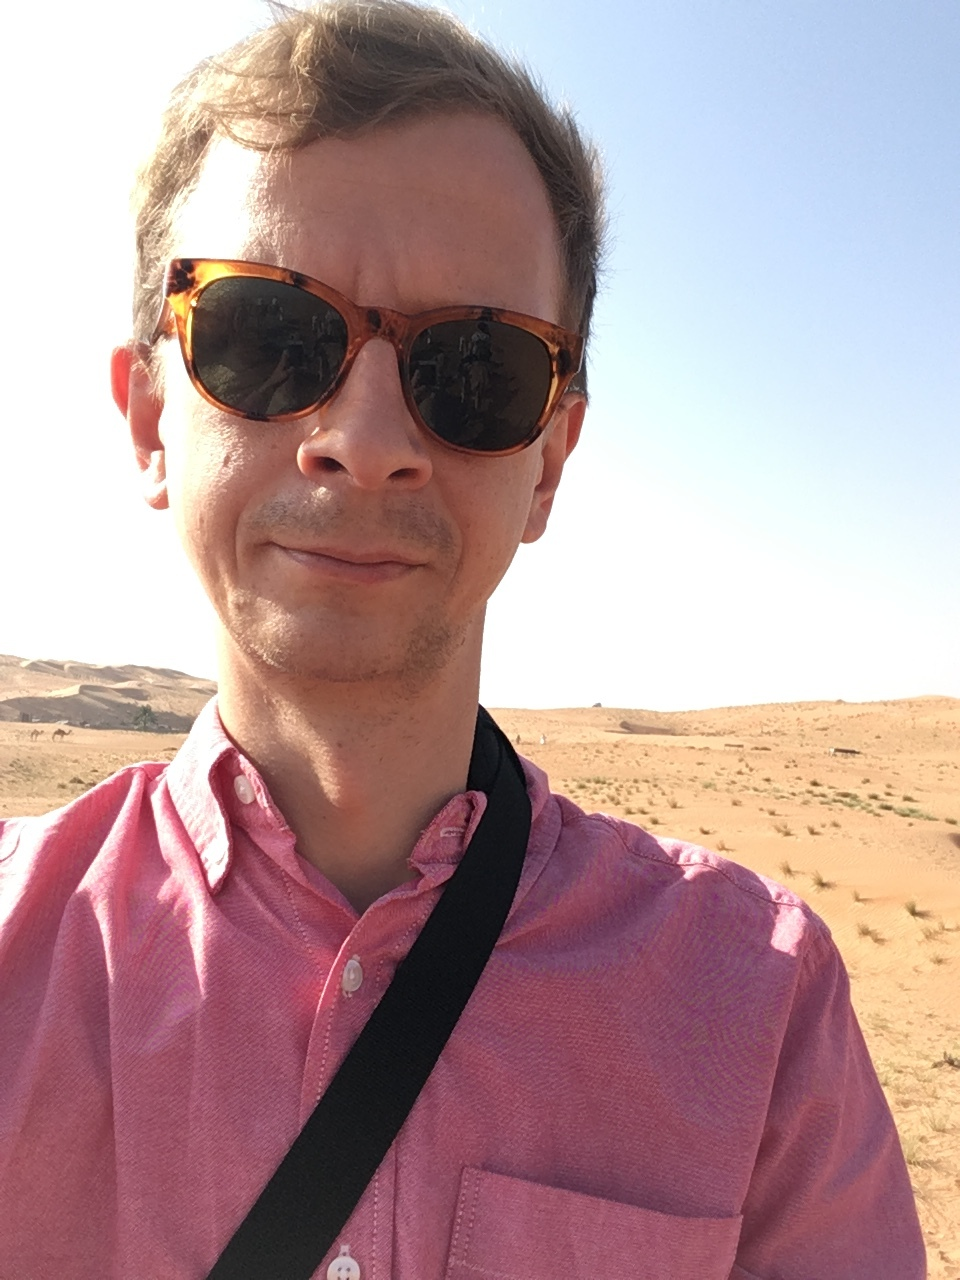 Paul Czodrowski - since September 2018: TU DortmundDepartment Chemistry & Chemical BiologyAssociate Professor